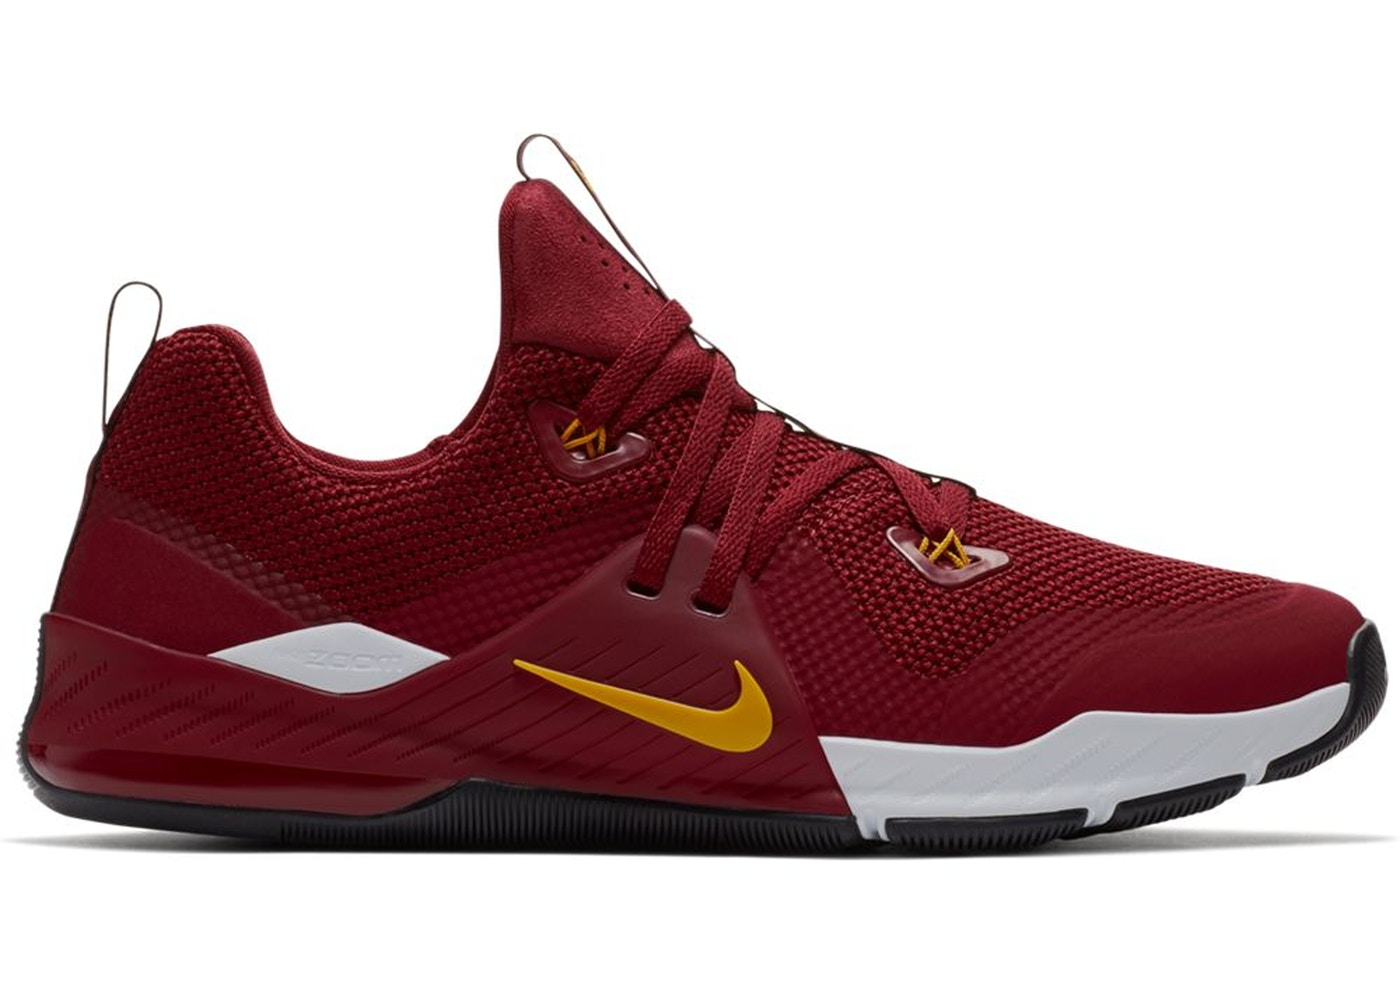 3c5375db9 Sell. or Ask. Size: 9.5. View All Bids. Nike Zoom Train Command ...